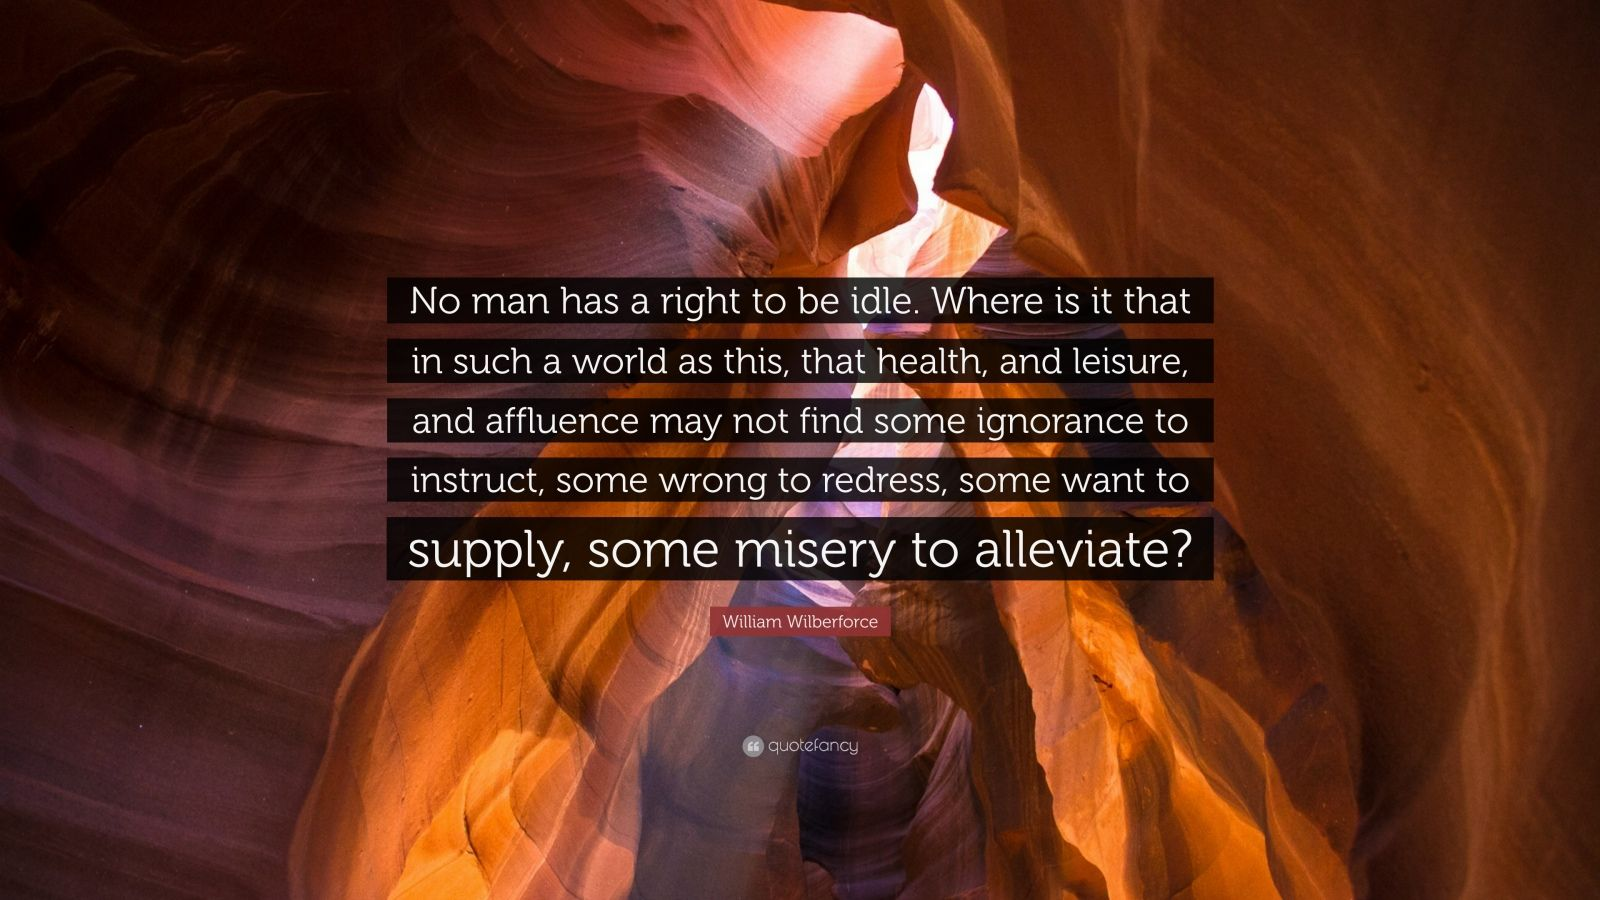 """William Wilberforce Quote: """"No man has a right to be idle. Where is it that in such a world as this, that health, and leisure, and affluence may not find some ignorance to instruct, some wrong to redress, some want to supply, some misery to alleviate?"""""""